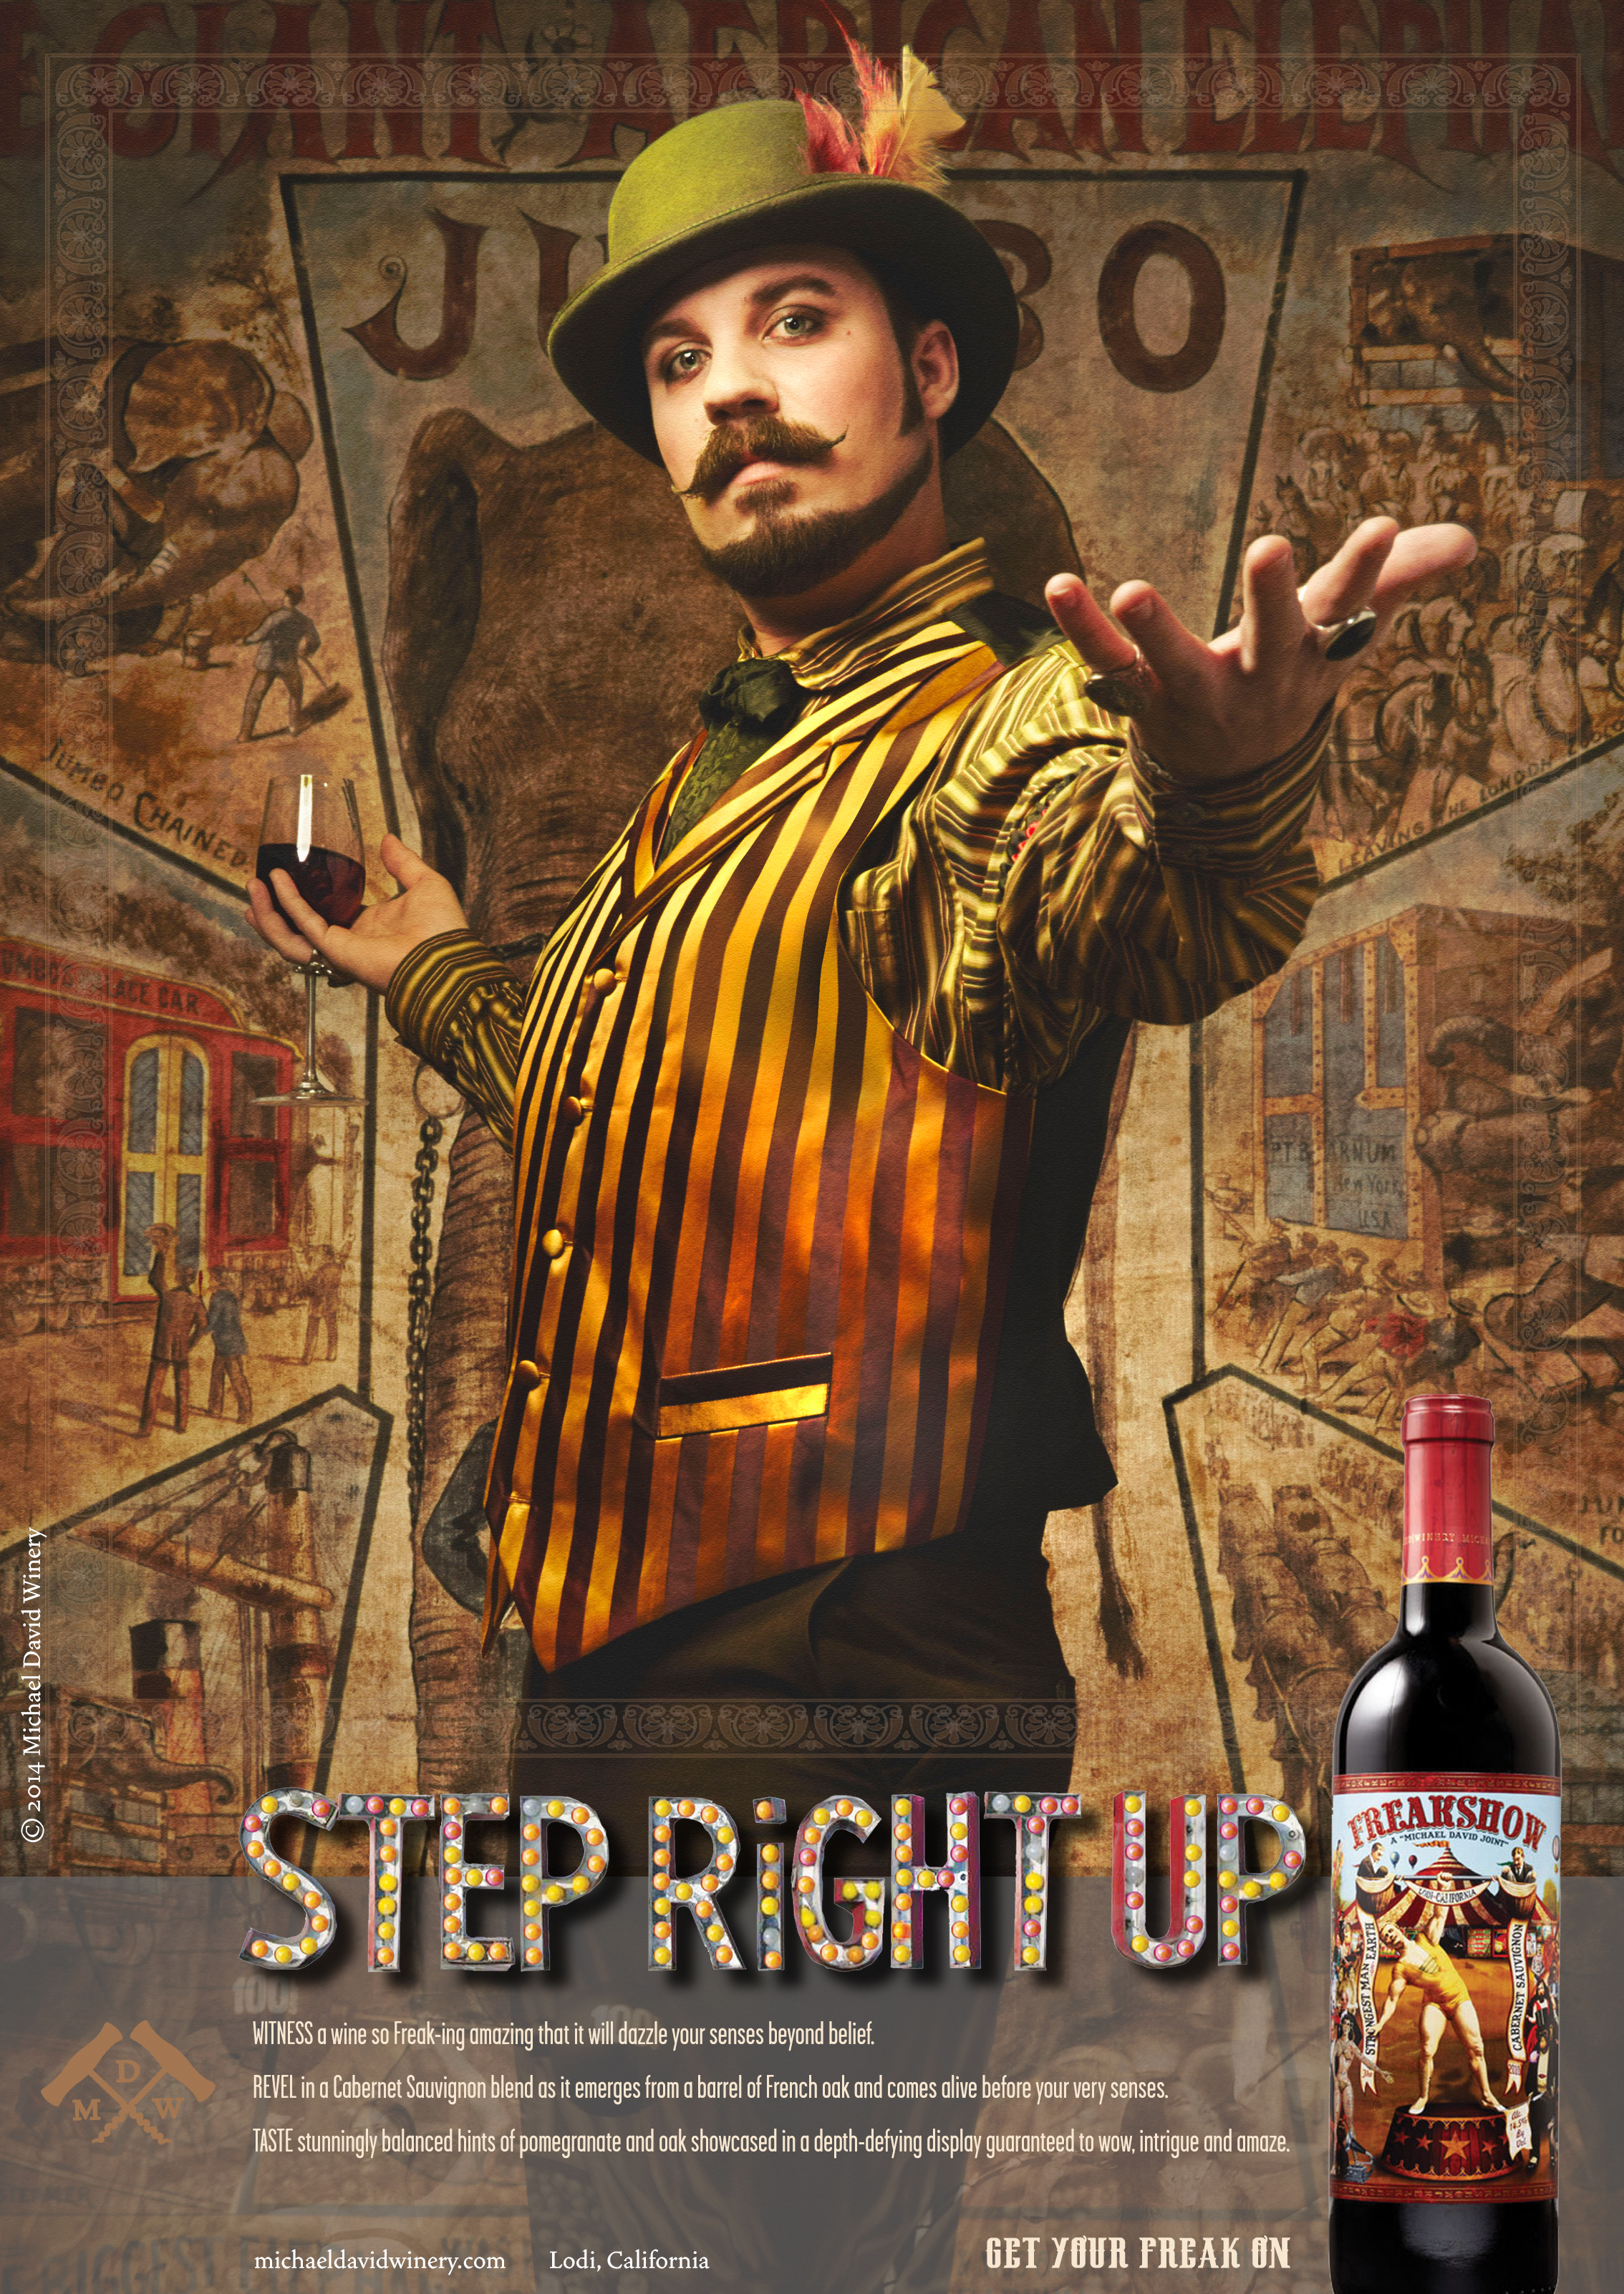 "STEP RIGHT UP - There's a new way to get your freak on. To introduce the brand to the American public, the campaign ran in Wine Spectator and Wine Enthusiast magazines, in-store displays, social and as digital media.THE CONCEPTWe see an image of a sideshow talker inviting the audience into the tent barking the classic, 'step right up!' The photo was shot in rich, vintage colors of a real circus barker with hypnotic appeal. This created immediate event excitement and directly tells the consumer something amazing lurks within.THE RESULTSFreakshow Cab was awarded Impacts' ""Rising Star"" award in 2016. Freakshow expanded to its production from fewer than 10,000 cases to more than 100,000 after the campaign. They also introduced additional products and now are sold across the nation."